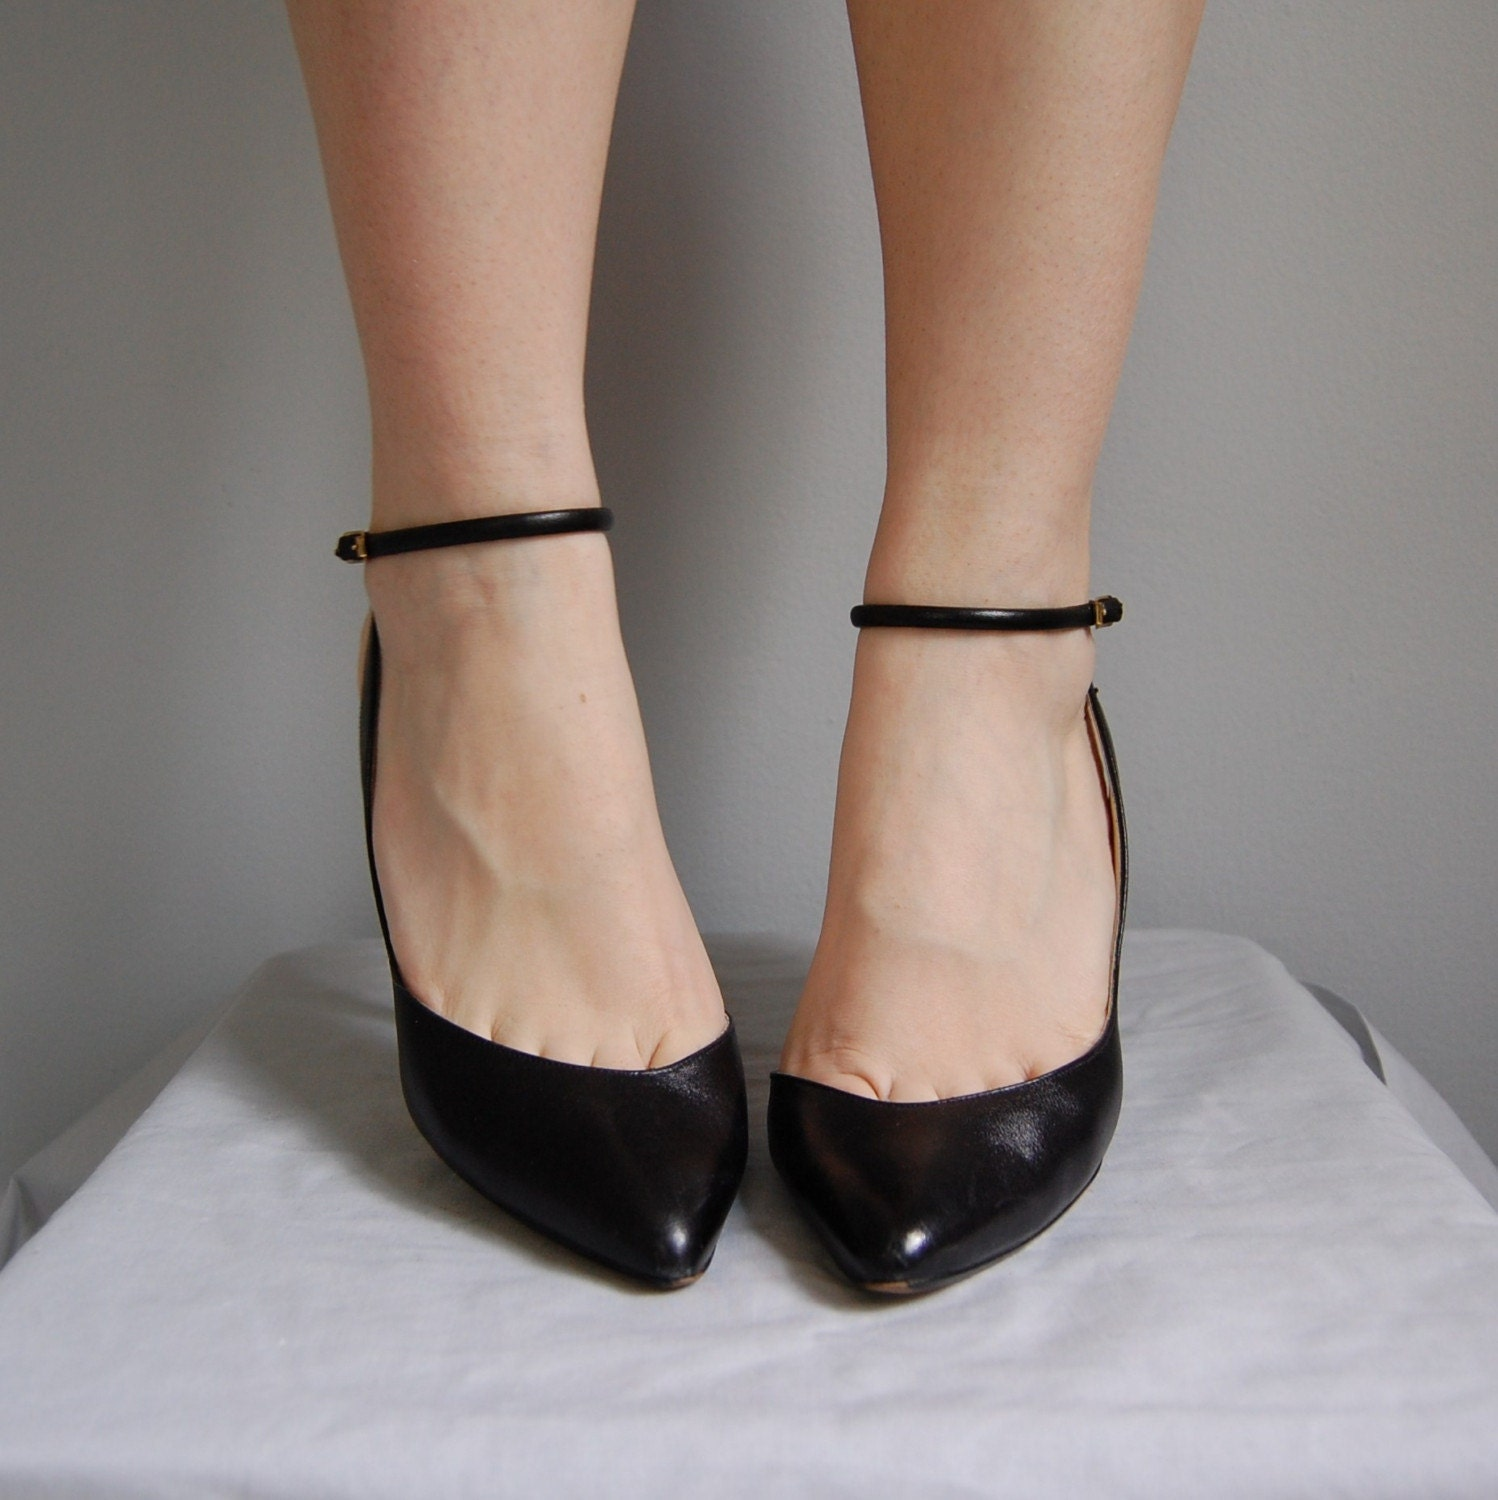 80s Leather Ankle Strap Kitten Heels 7 5